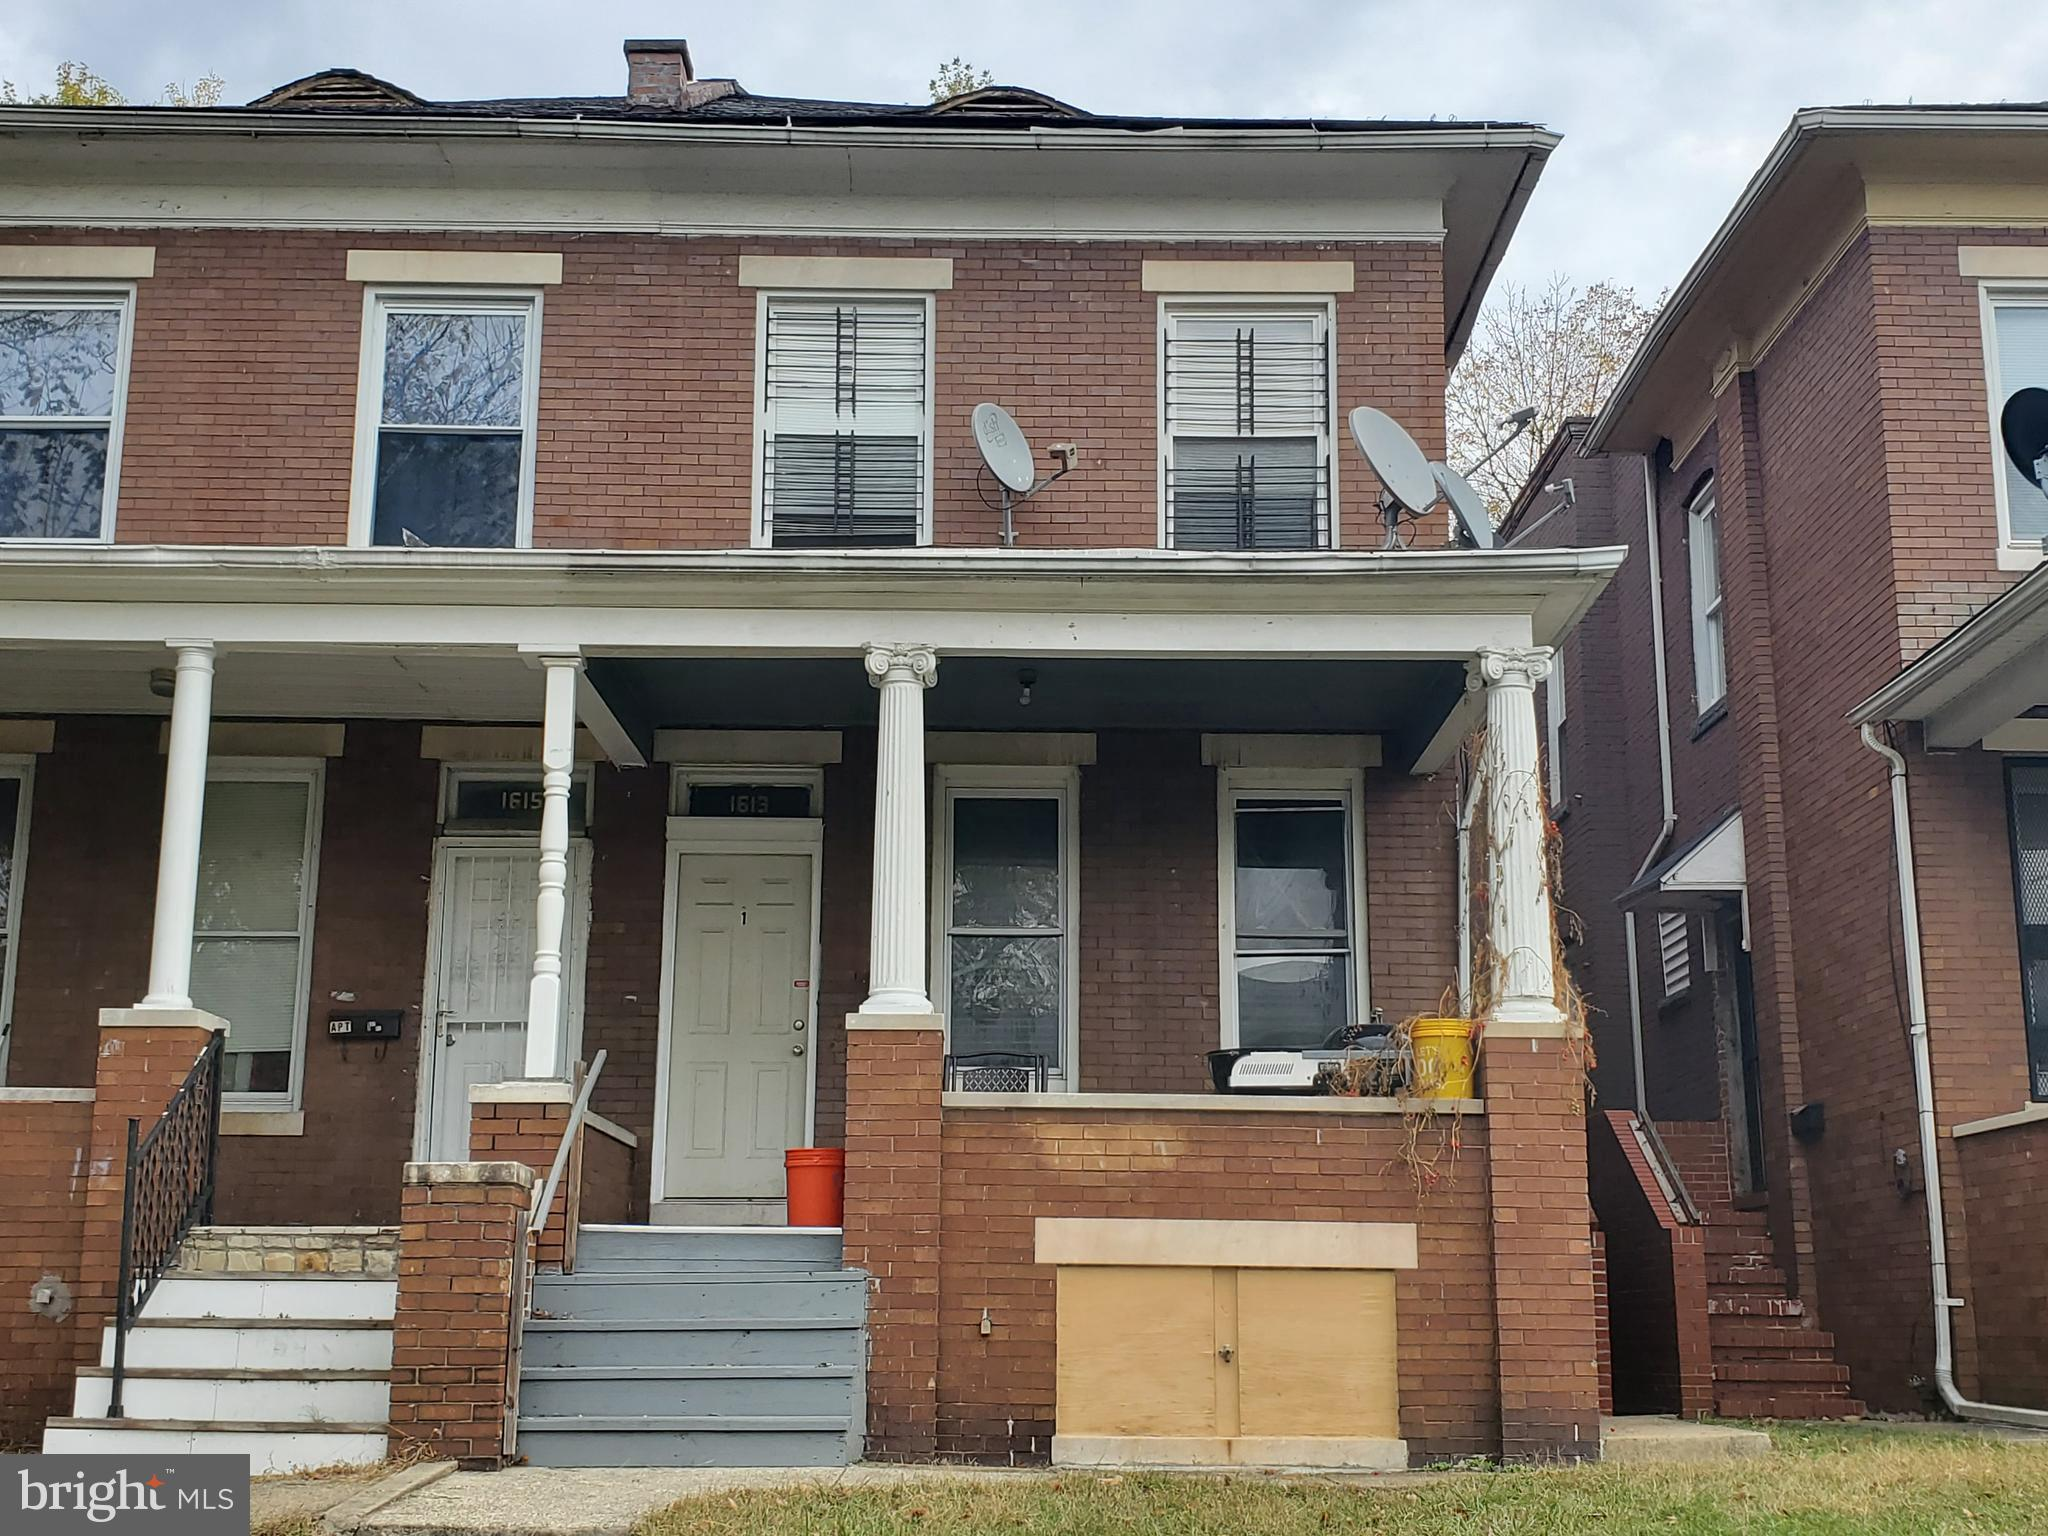 1613 N HILTON STREET, BALTIMORE, MD 21216